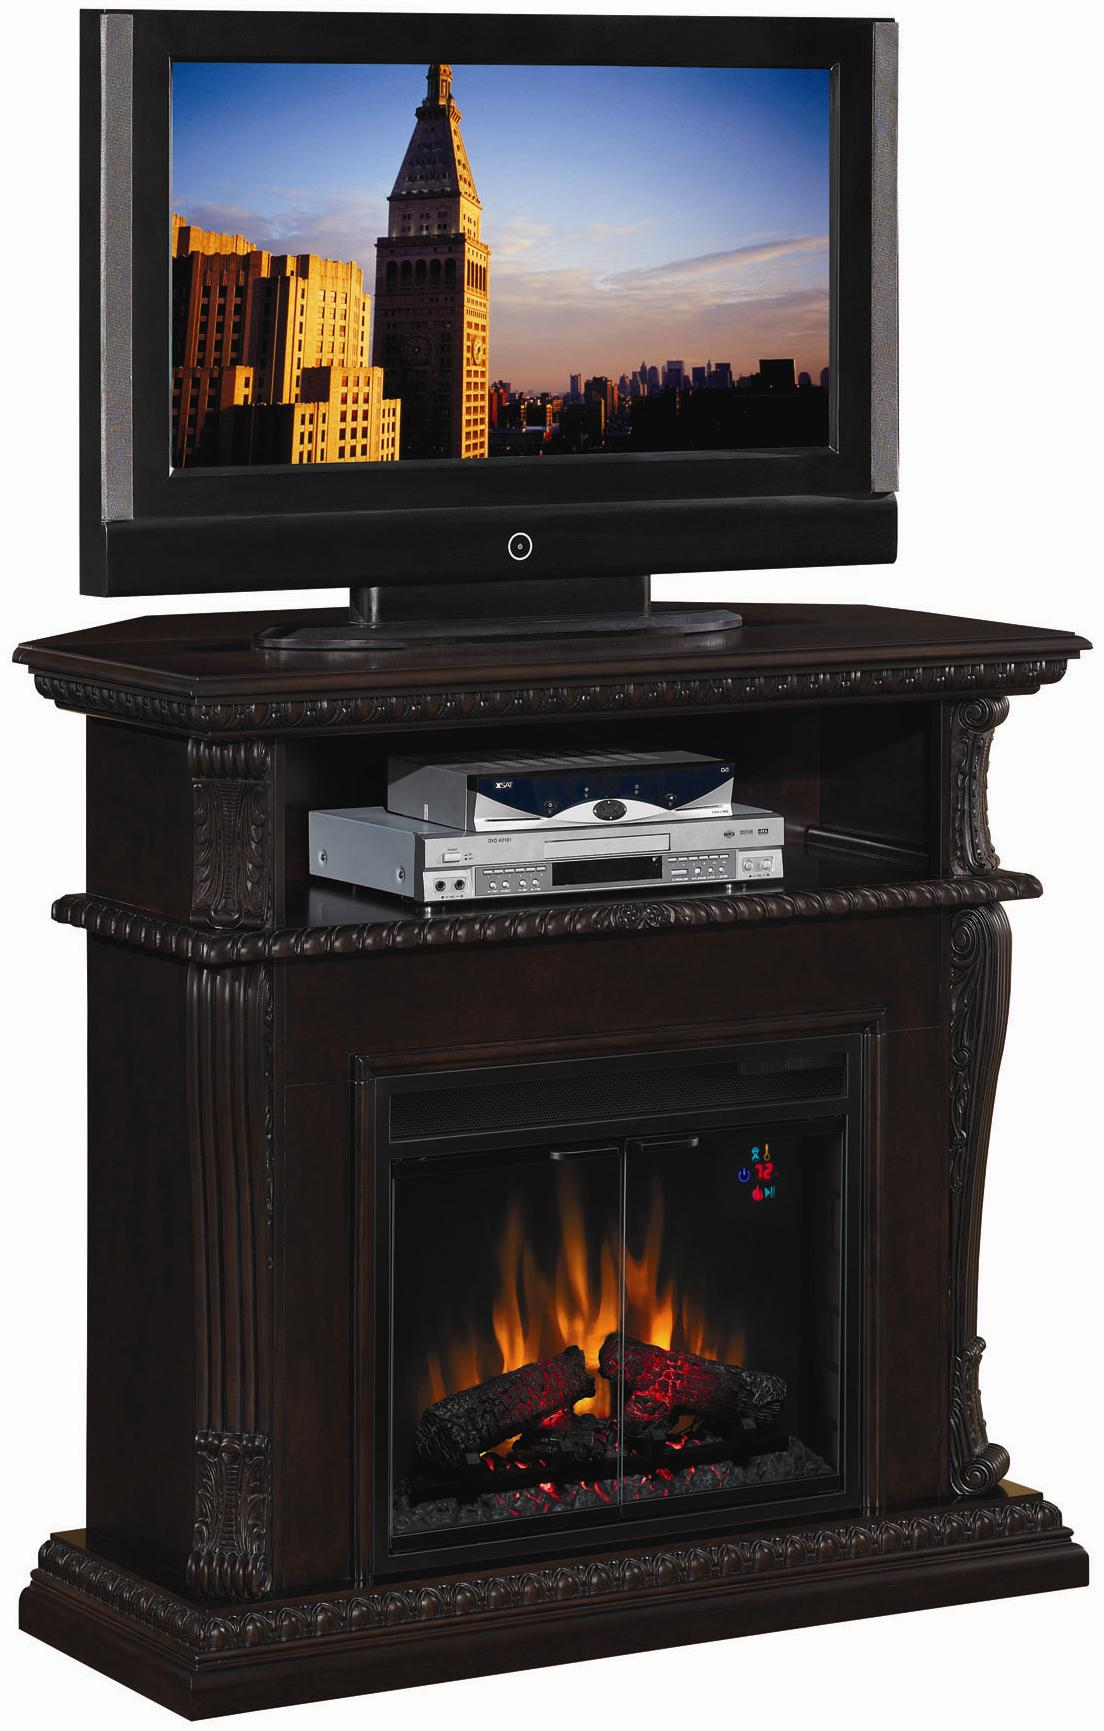 ClassicFlame Corinth  Corinth Electric Fireplace - Item Number: 23DE1447-W502